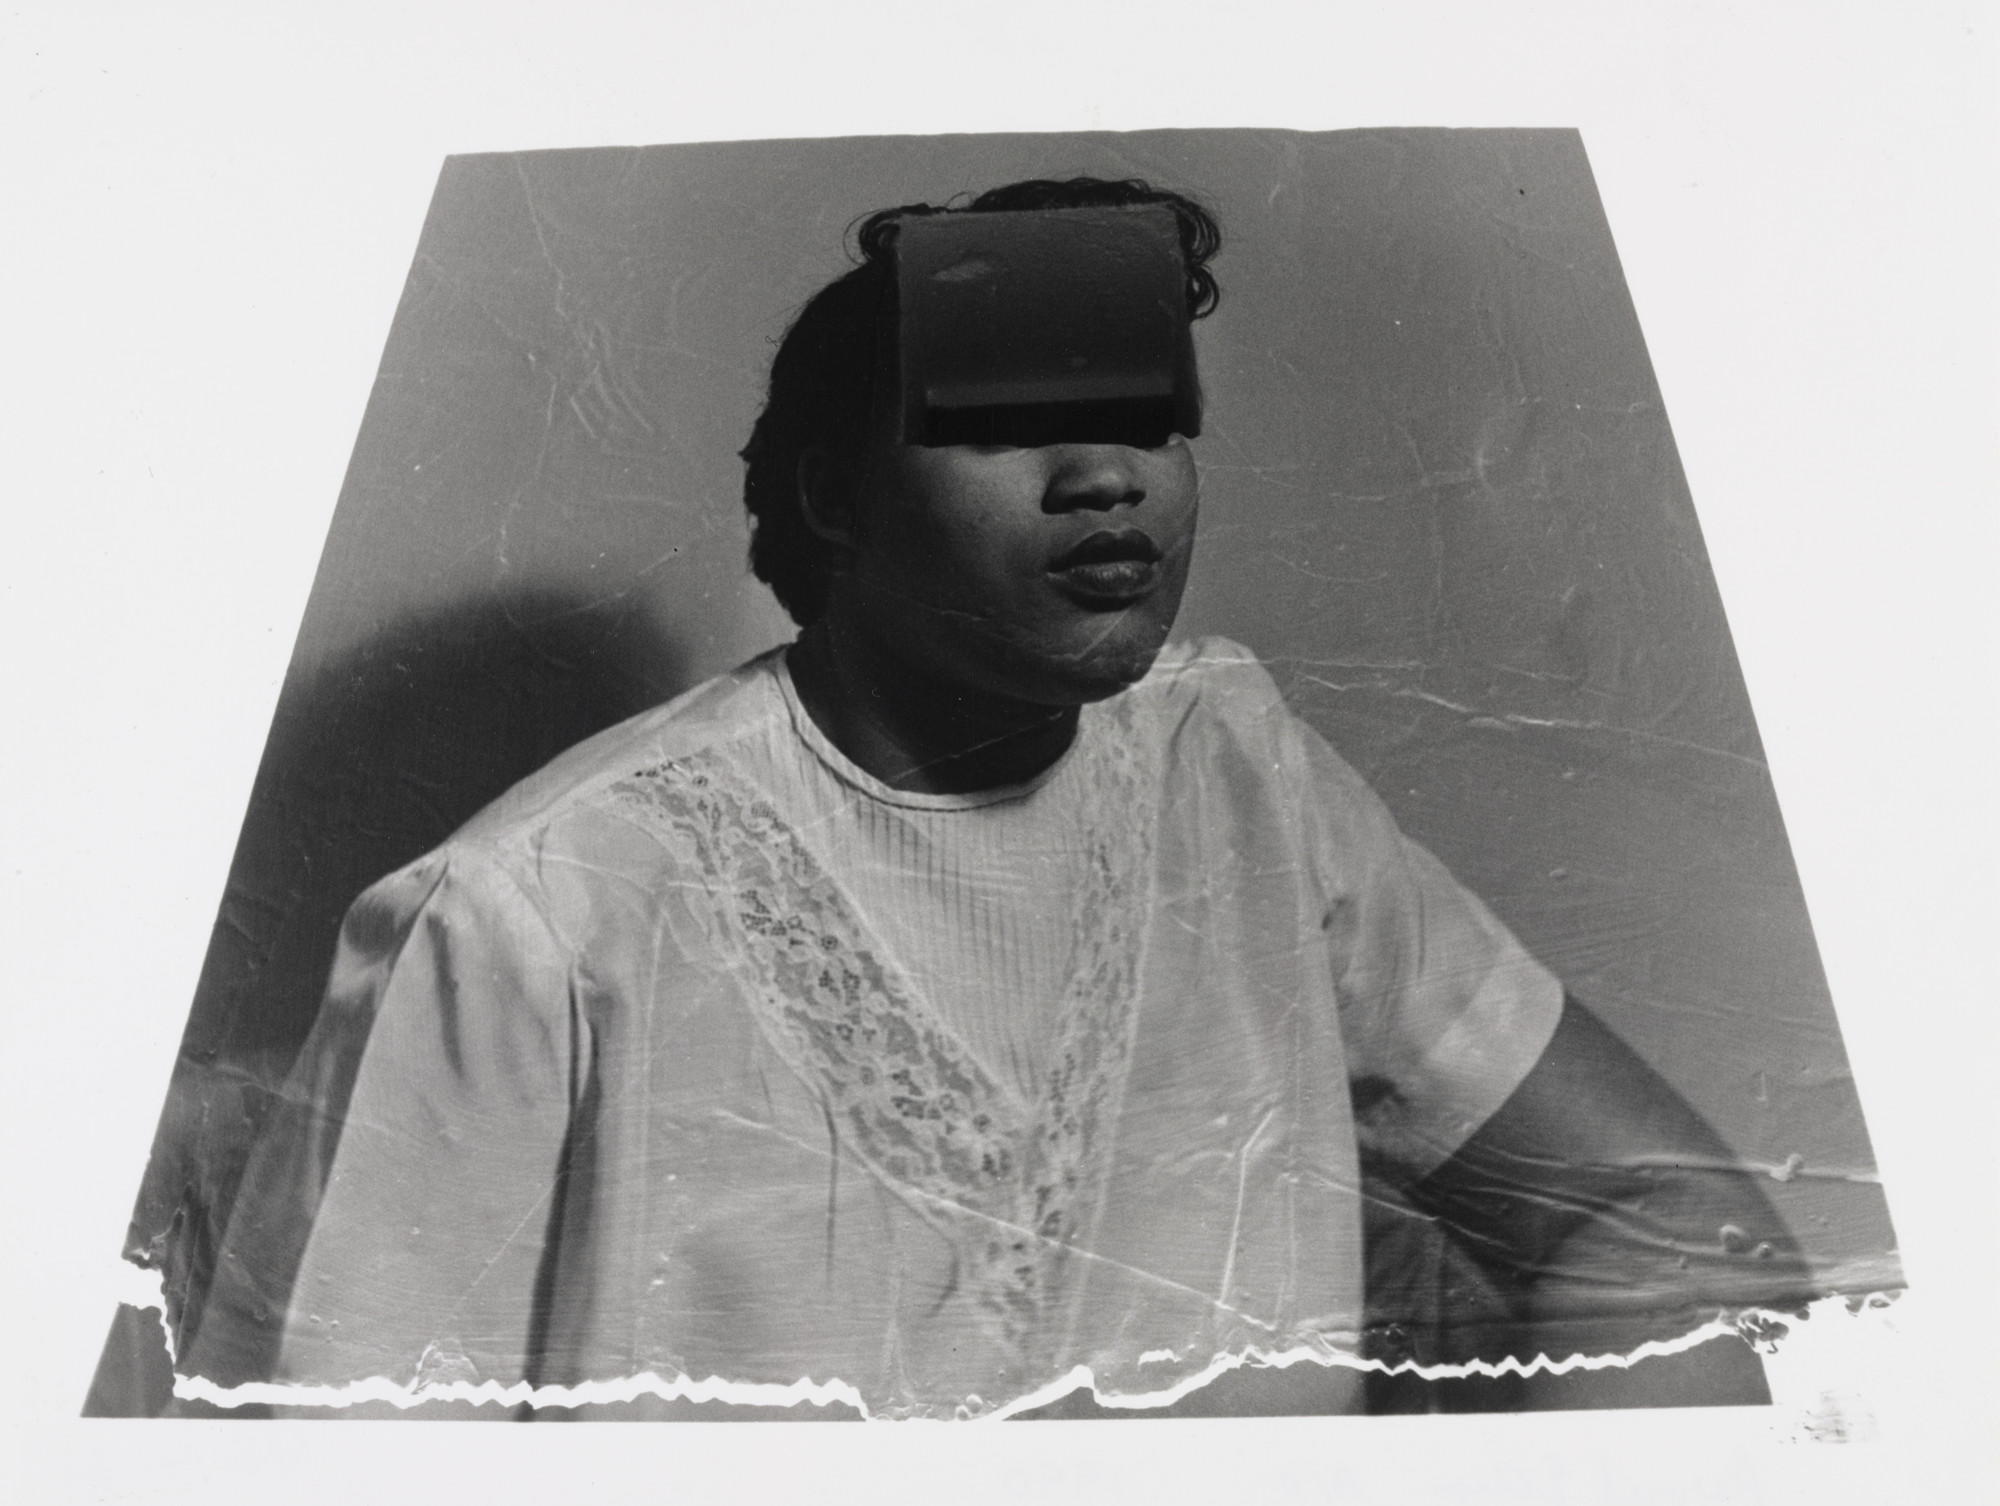 Darrel Ellis. Untitled. 1990